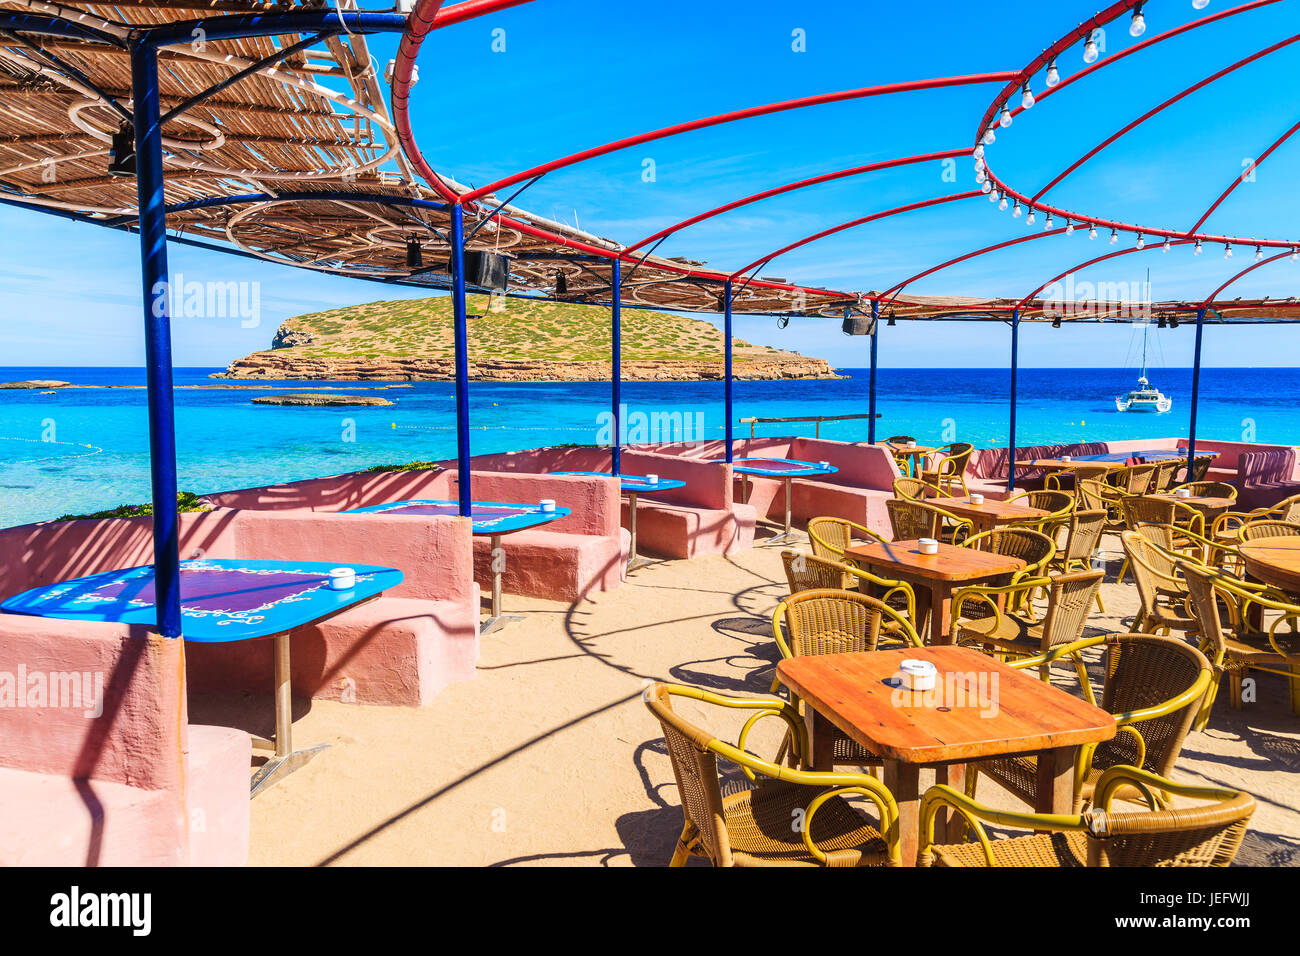 Coastal bar with beautiful sea view on Cala Comte beach, Ibiza island, Spain - Stock Image